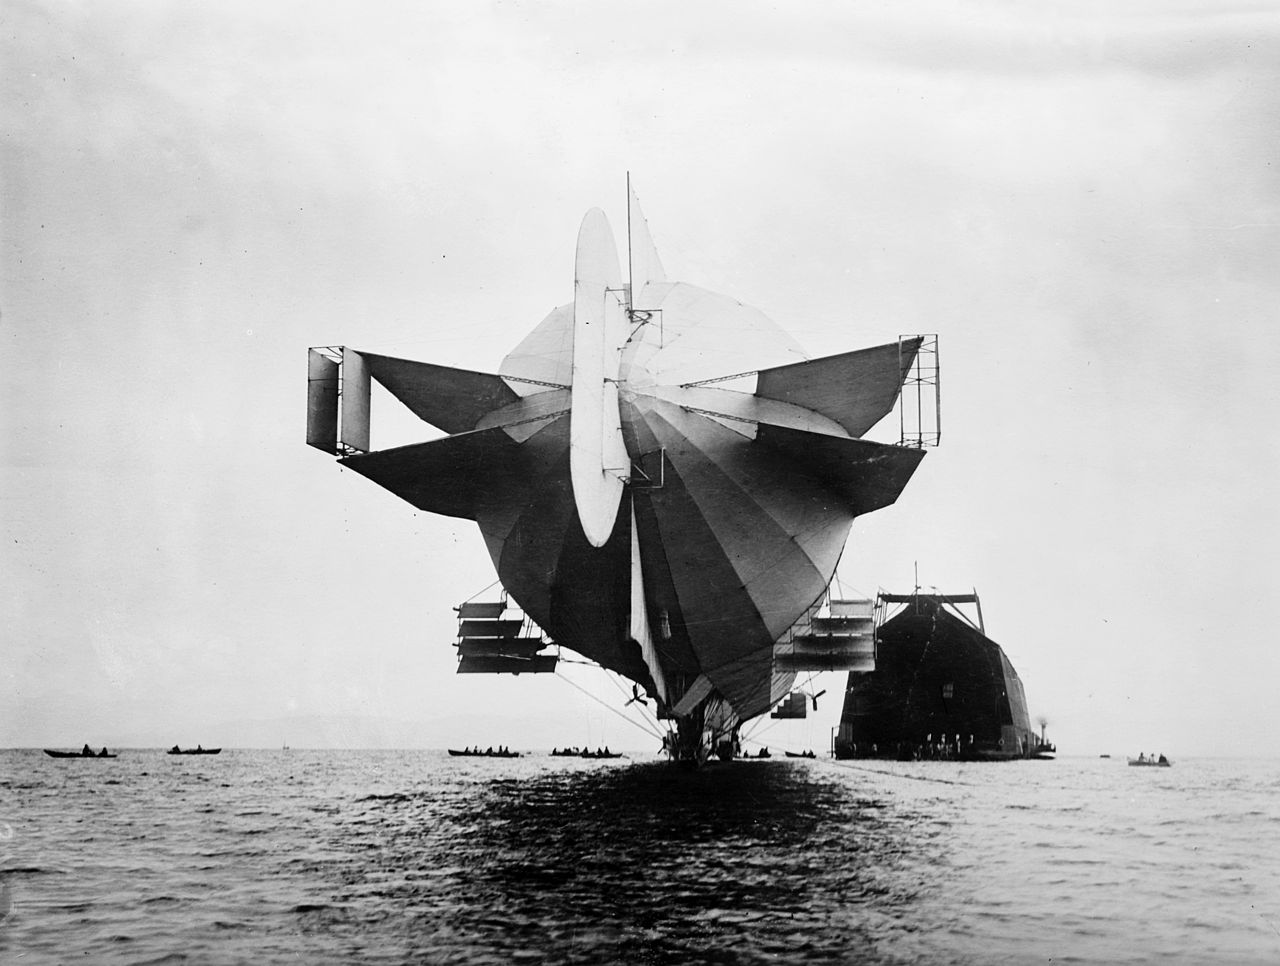 1280px-Flickr_-_trialsanderrors_-_Stern_of_Zeppelin_LZ-4_airship_1908